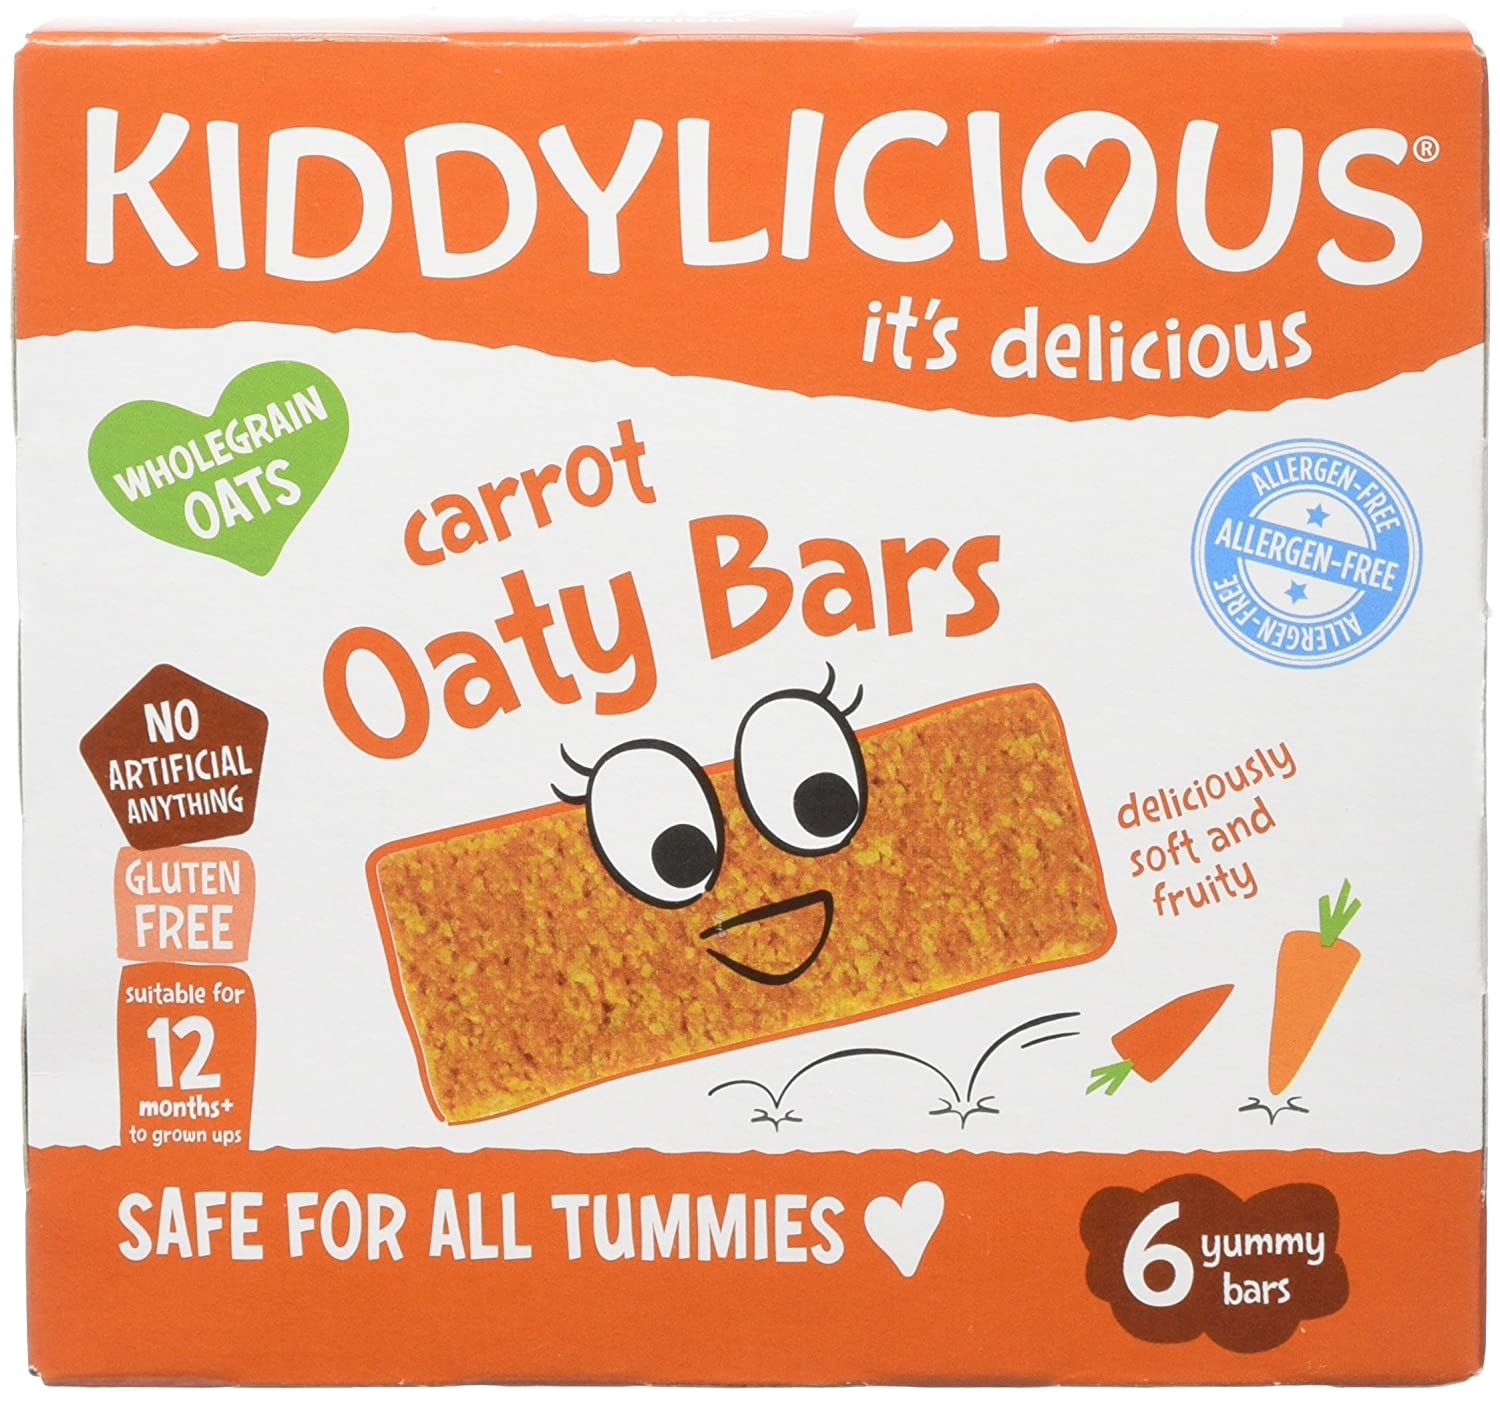 Kiddylicious Carrot Oaty Bars, 20 g, Pack of 6 The Kids Food Co. 1080130